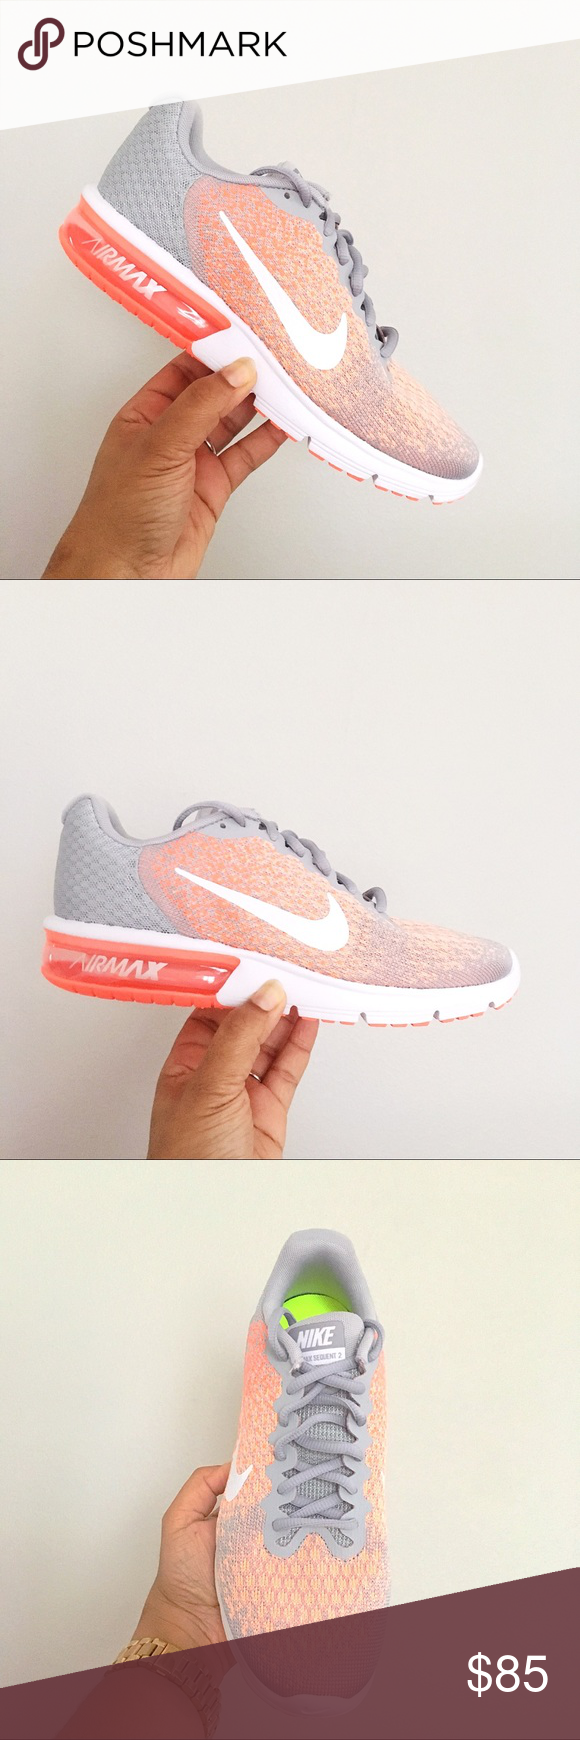 85e45ce28 NEW Women s Nike Air Max Sequent 2 SIZE 9 Brand New in Box no lid Nike Air  Max Sequent 2 Nike 852465 005 - Color  Wolf Grey   White Bright Mango ...